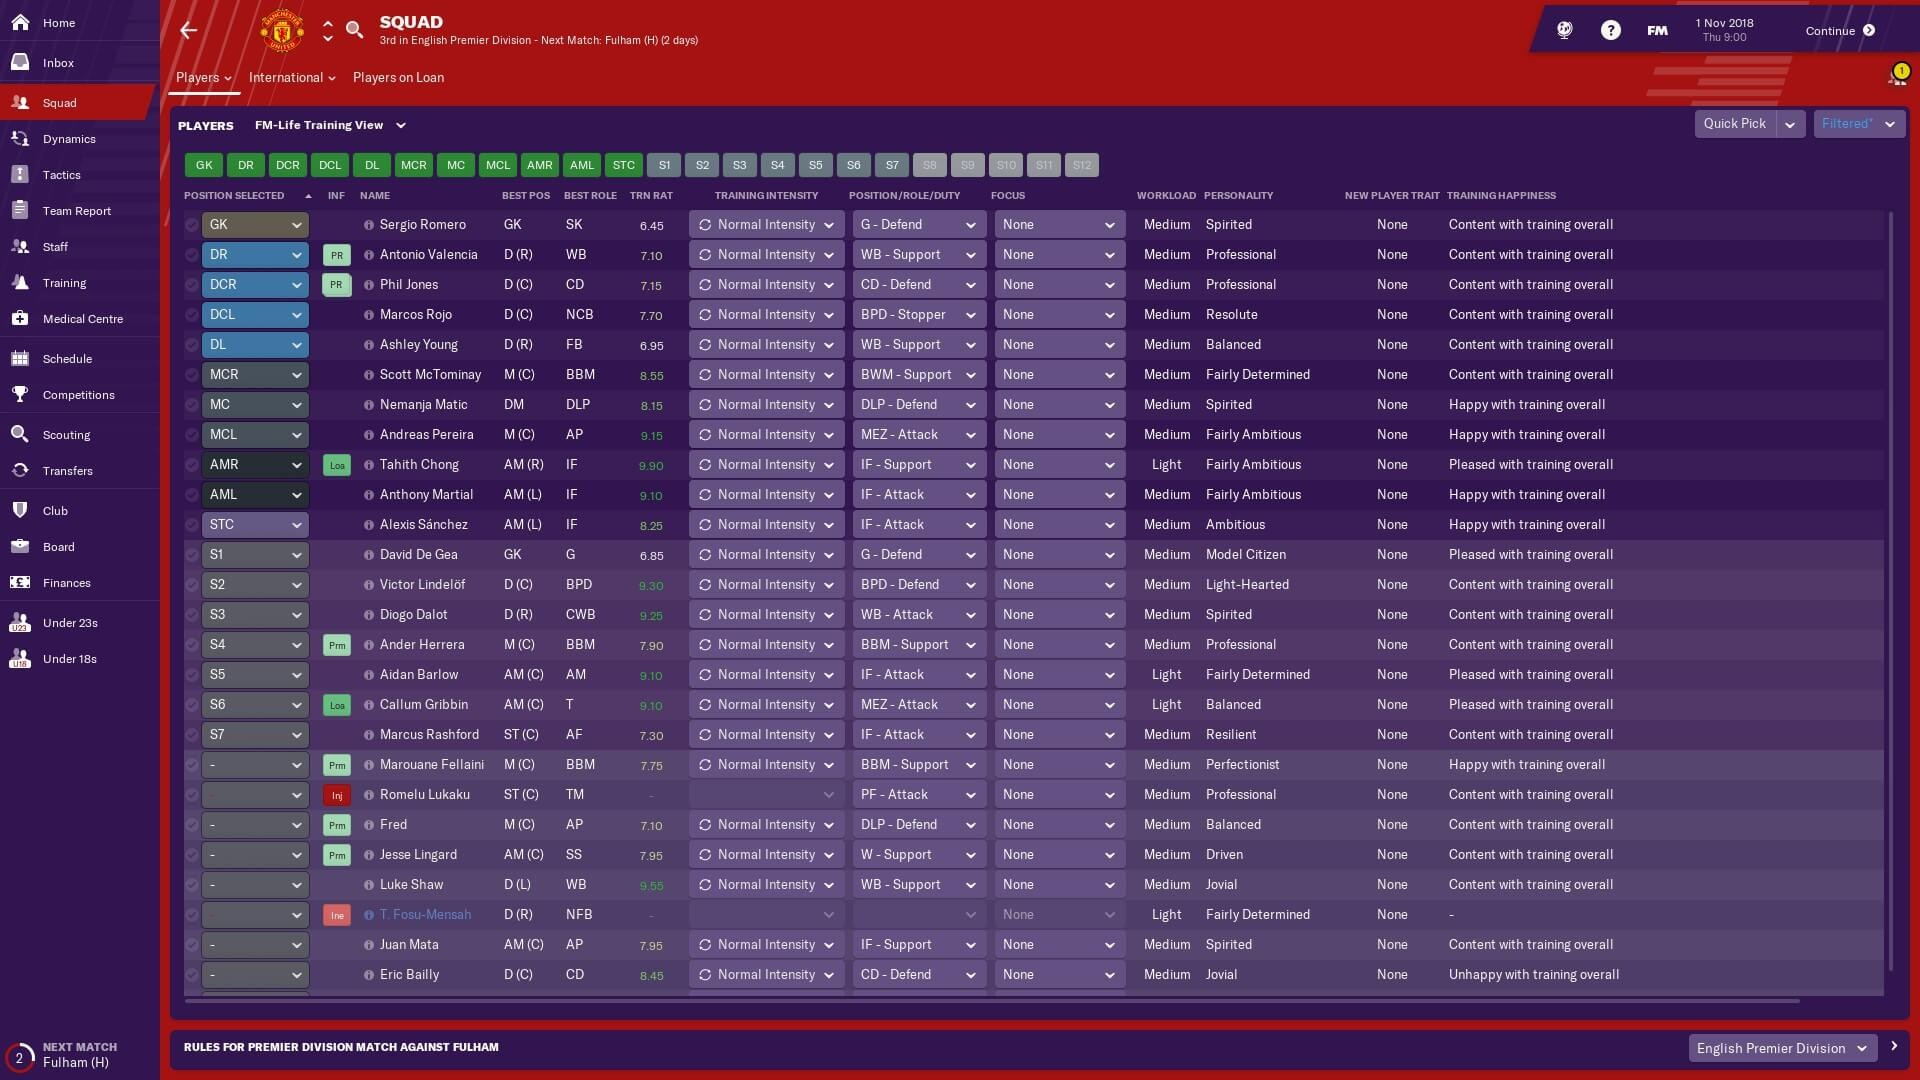 Training View for FM19 by FM-Life | FM Scout